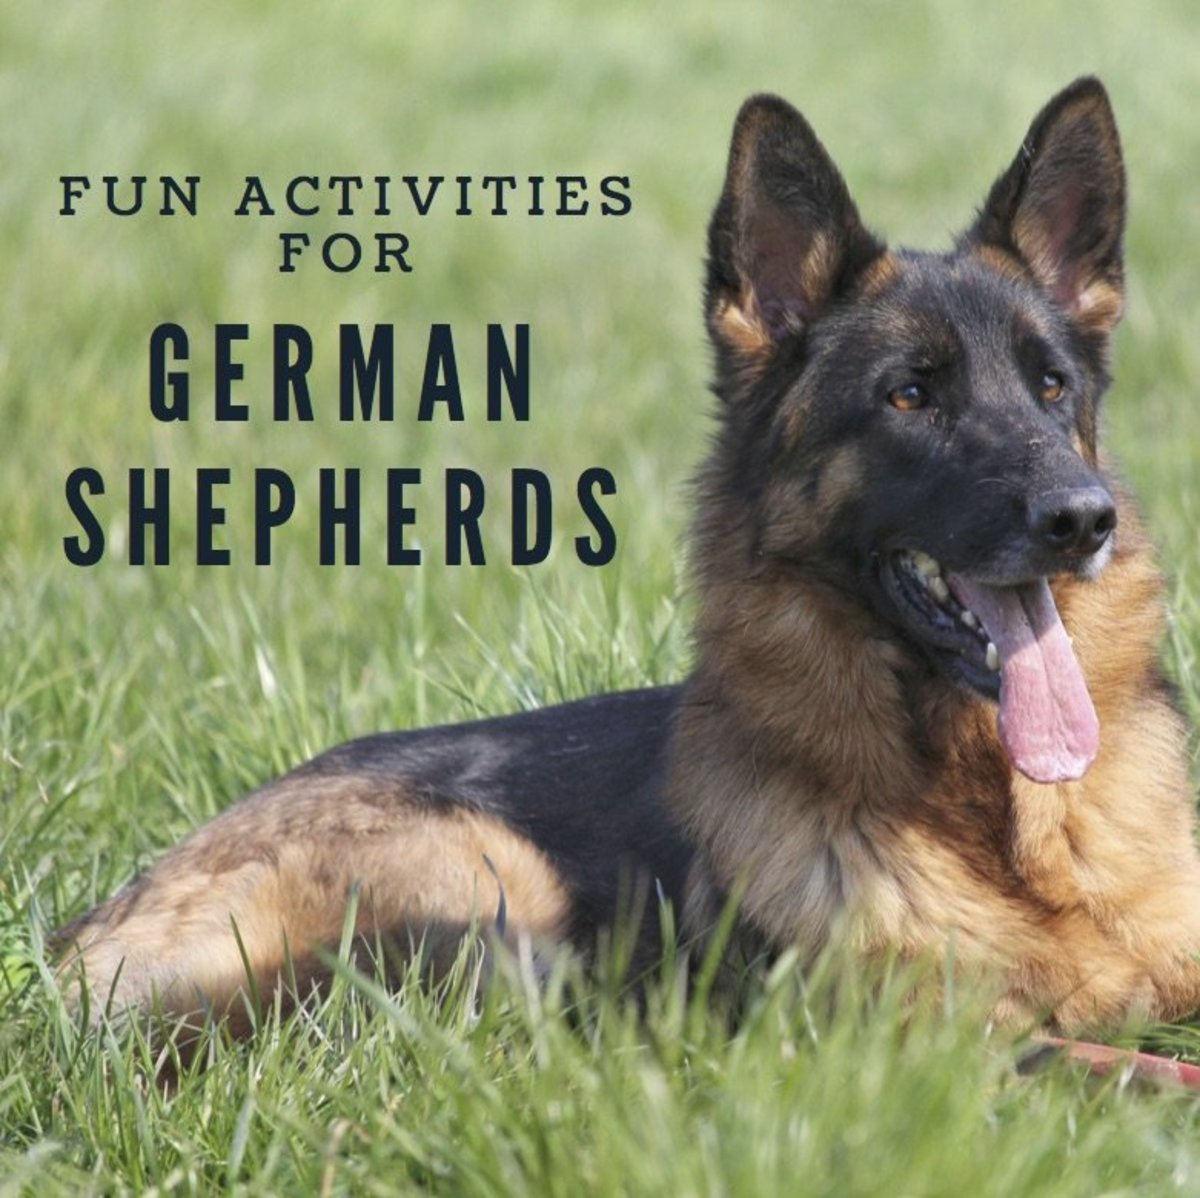 German Shepherds are happiest when kept busy.